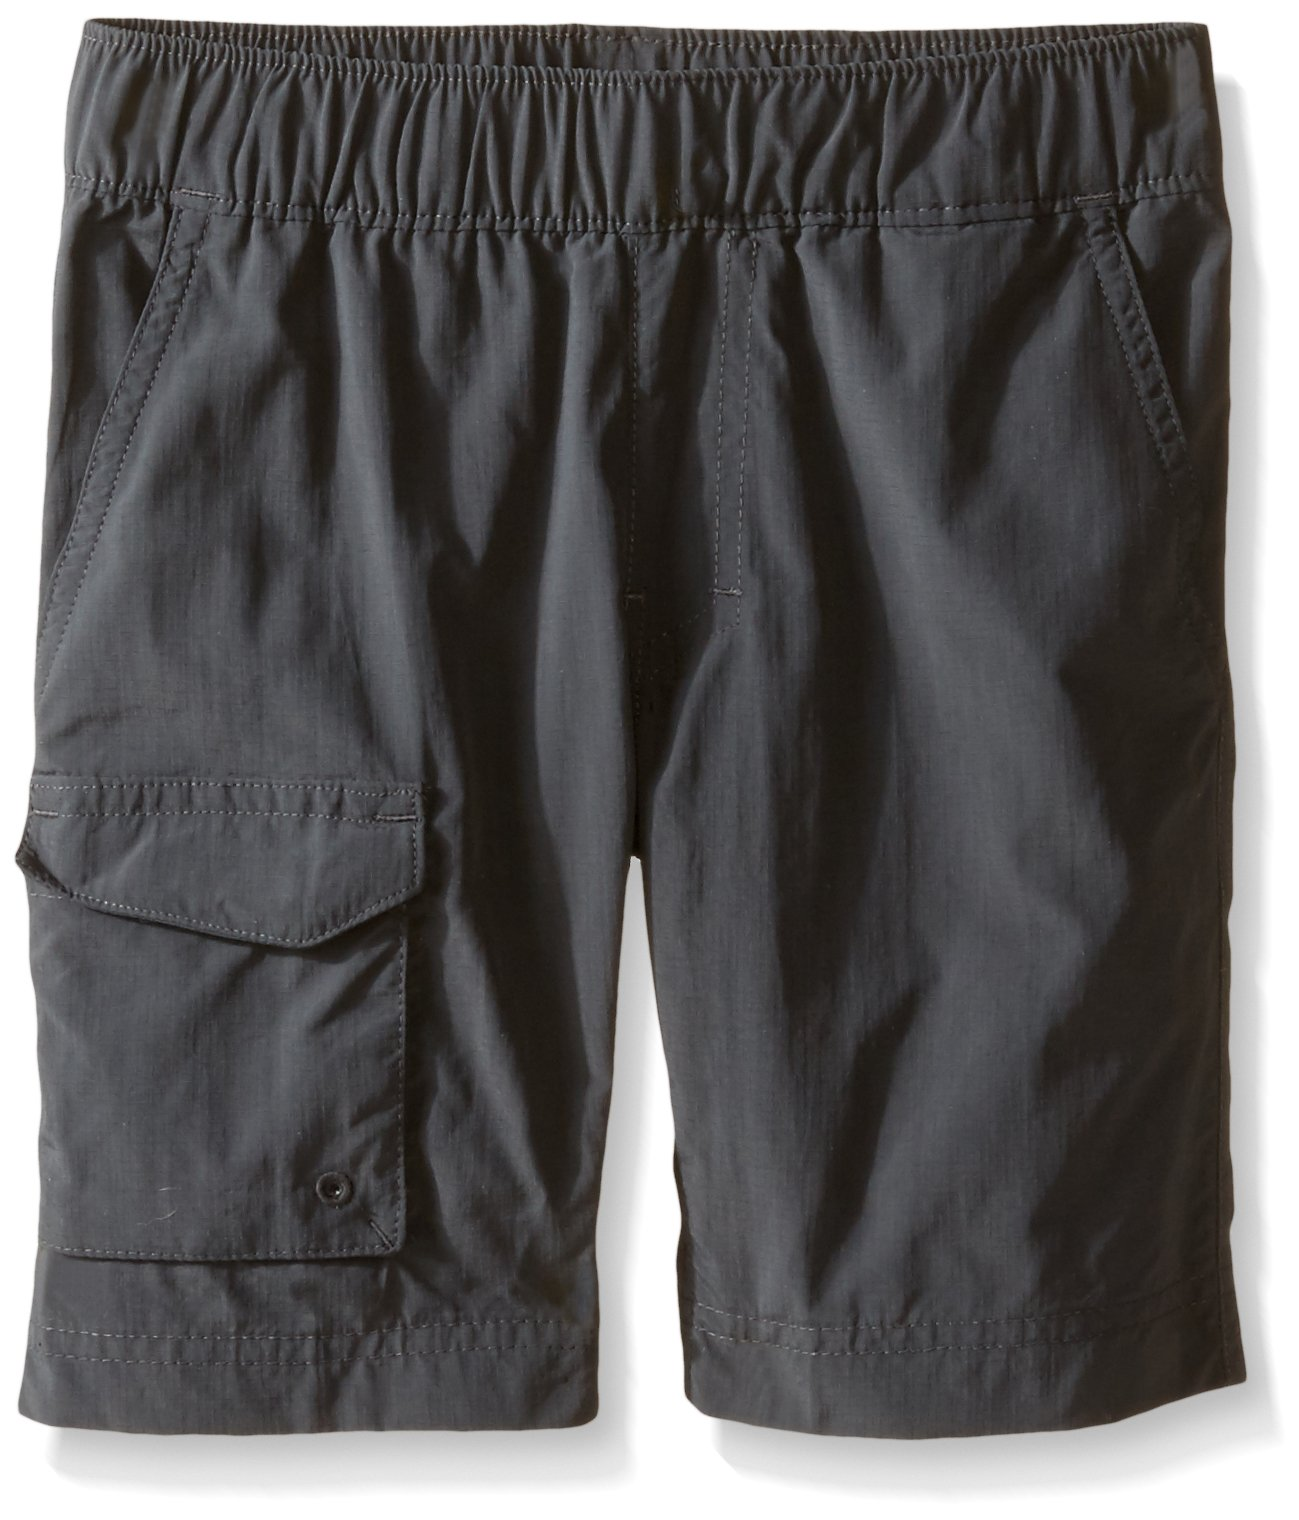 Columbia Youth Boys' Silver Ridge Pull-On Short, Breathable, UPF 30 Sun Protection by Columbia